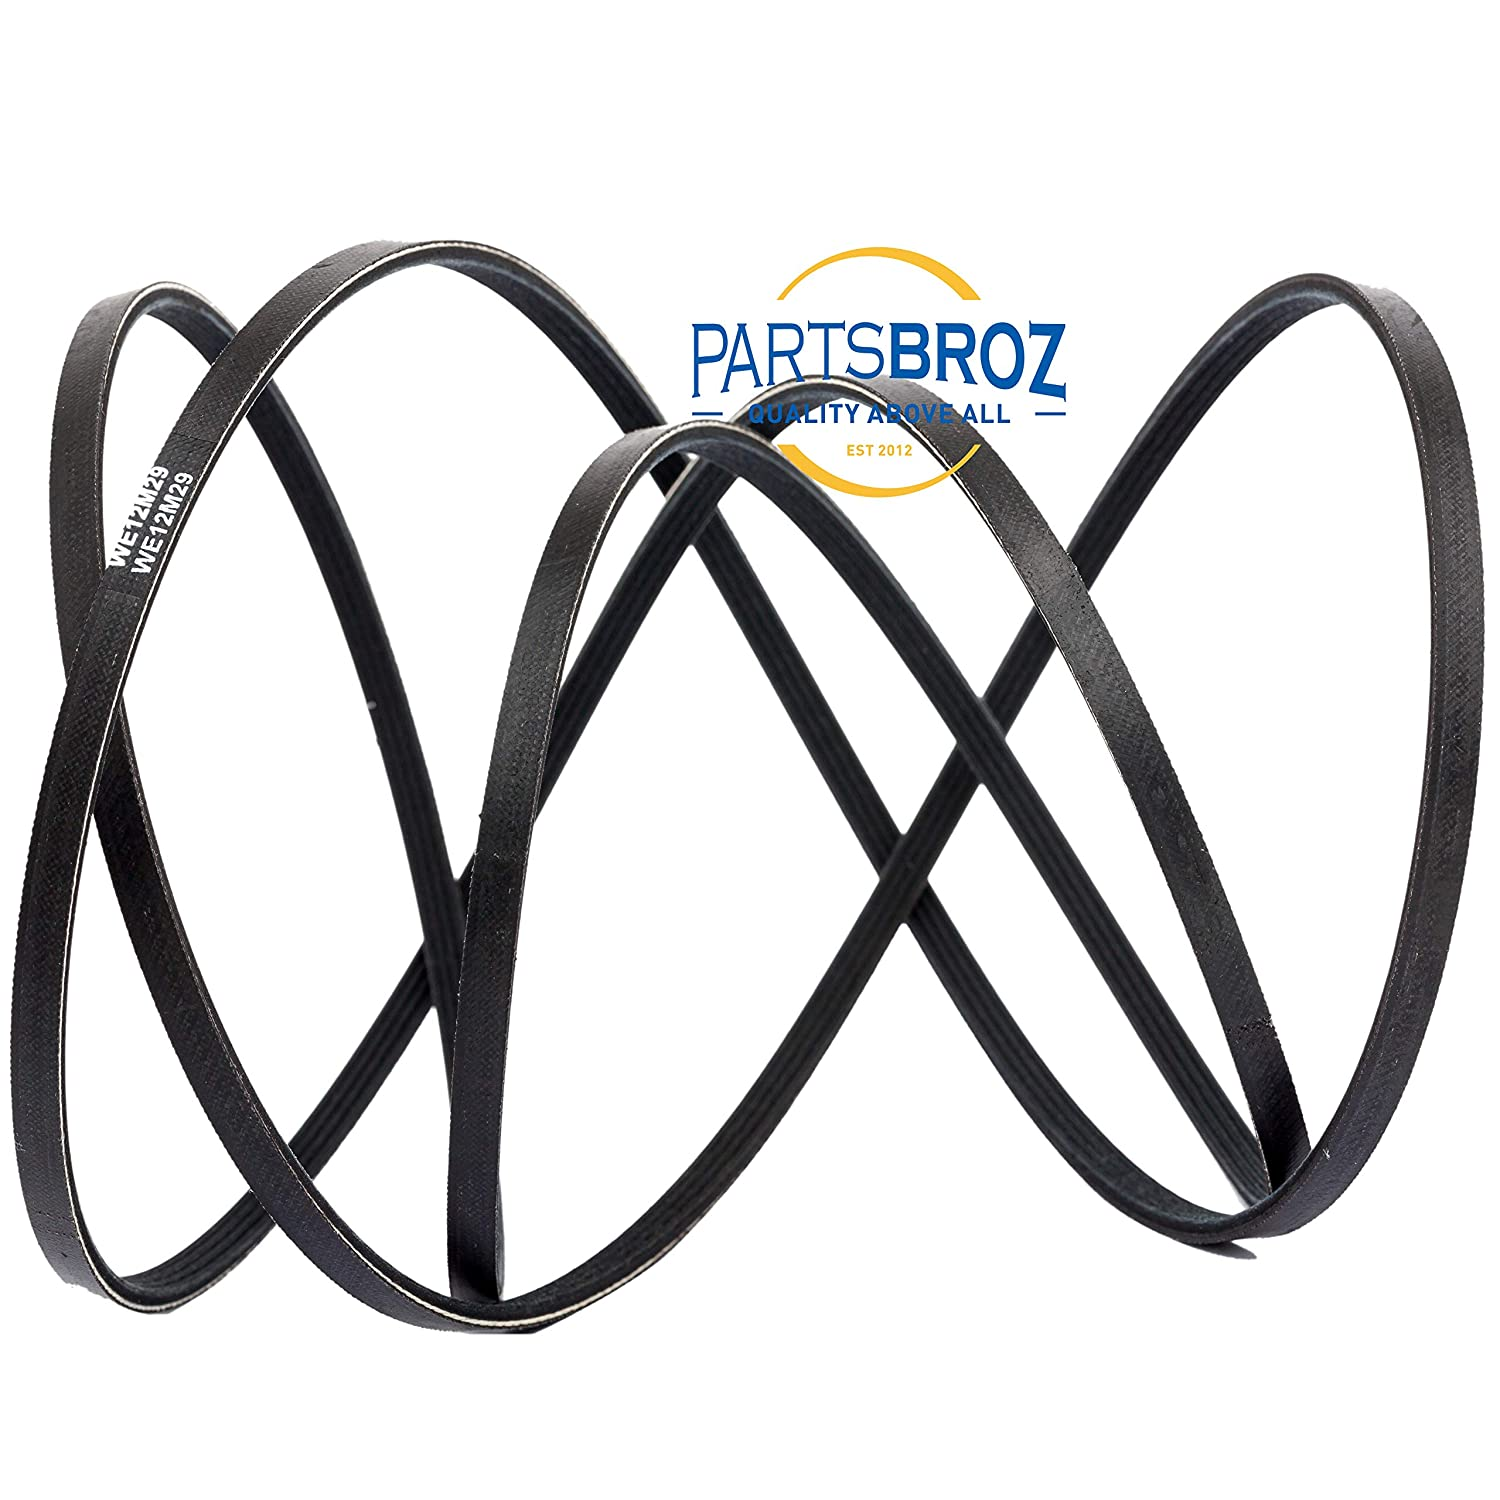 559C197P001 1381519 Replaces Part Numbers AP4324040 PS1766009 WE12M29 Dryer Drum Drive Belt Replacement for GE 559C197P003 WE120122 WE12X21574 Frigidaire /& Electrolux dryers by PartsBroz